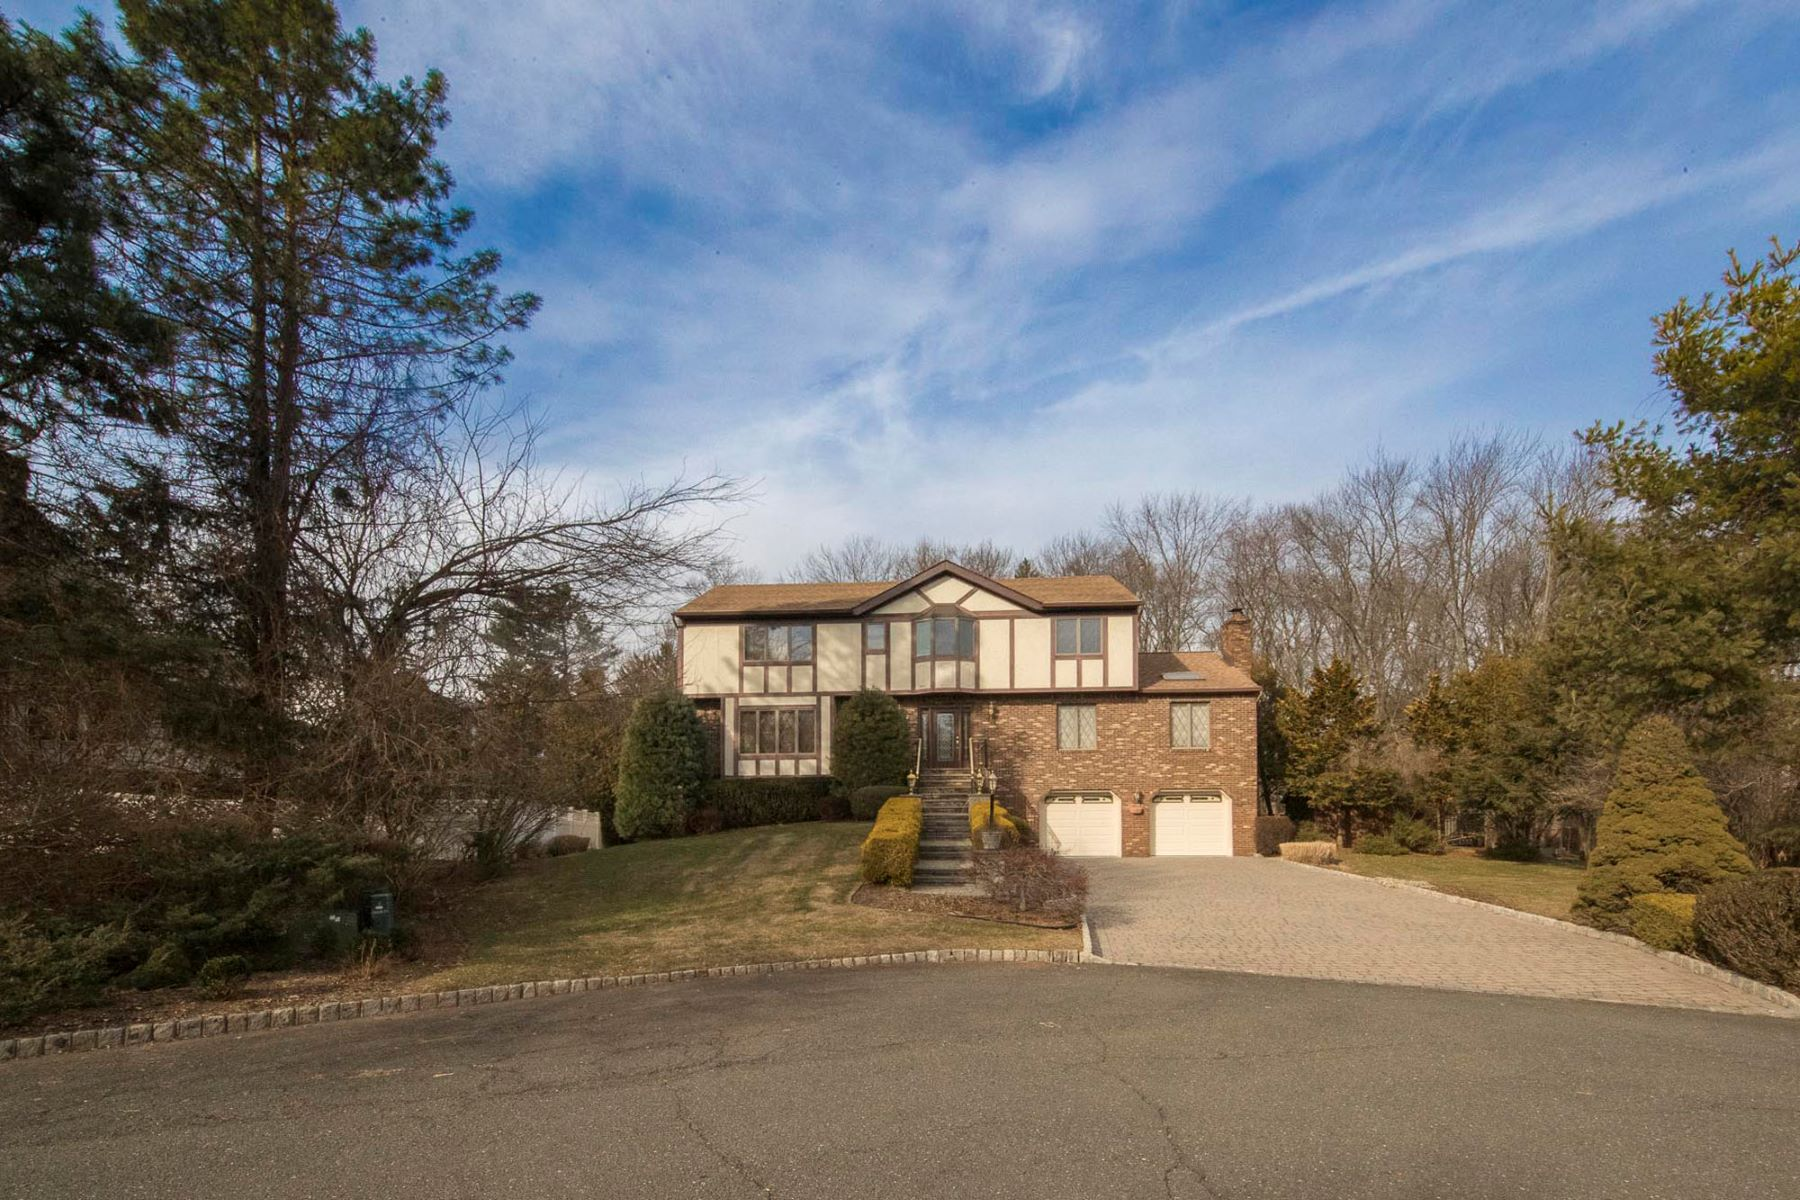 Single Family Home for Sale at Beautifully Updated 29 Fox Hollow Road Ramsey, New Jersey 07446 United States